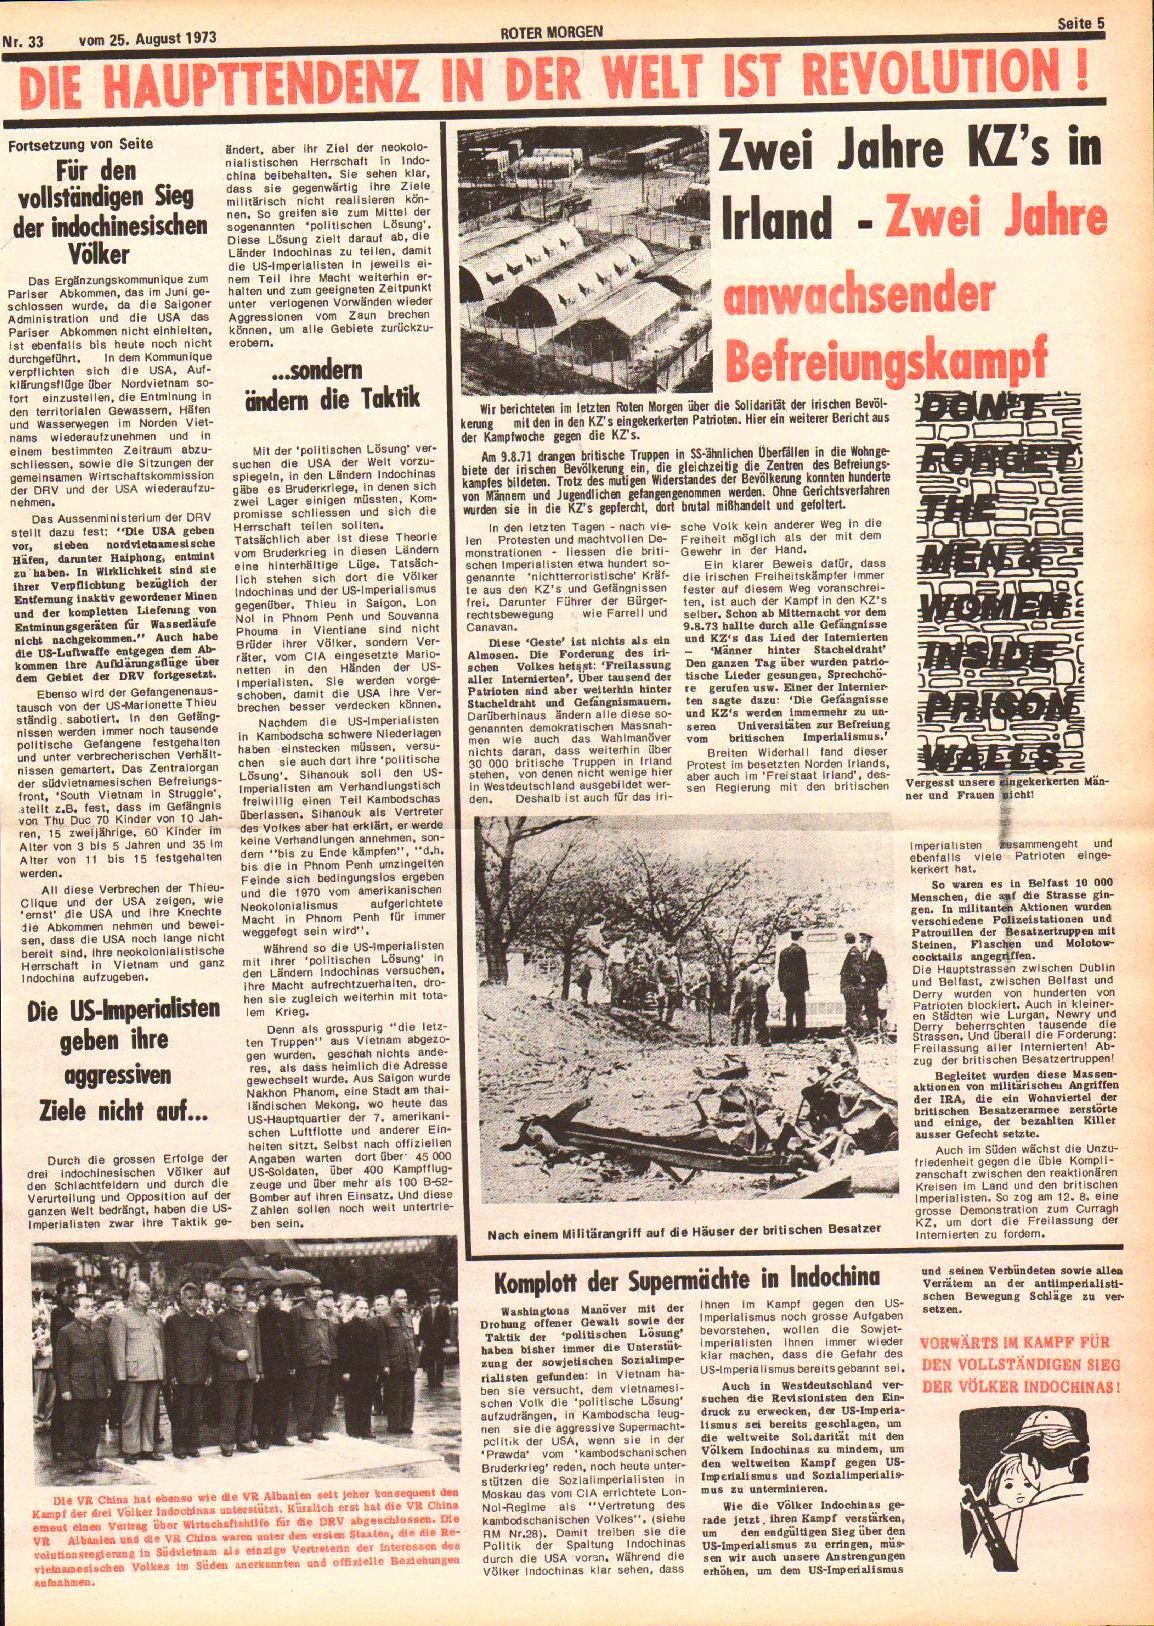 Roter Morgen, 7. Jg., 25. August 1973, Nr. 33, Seite 5